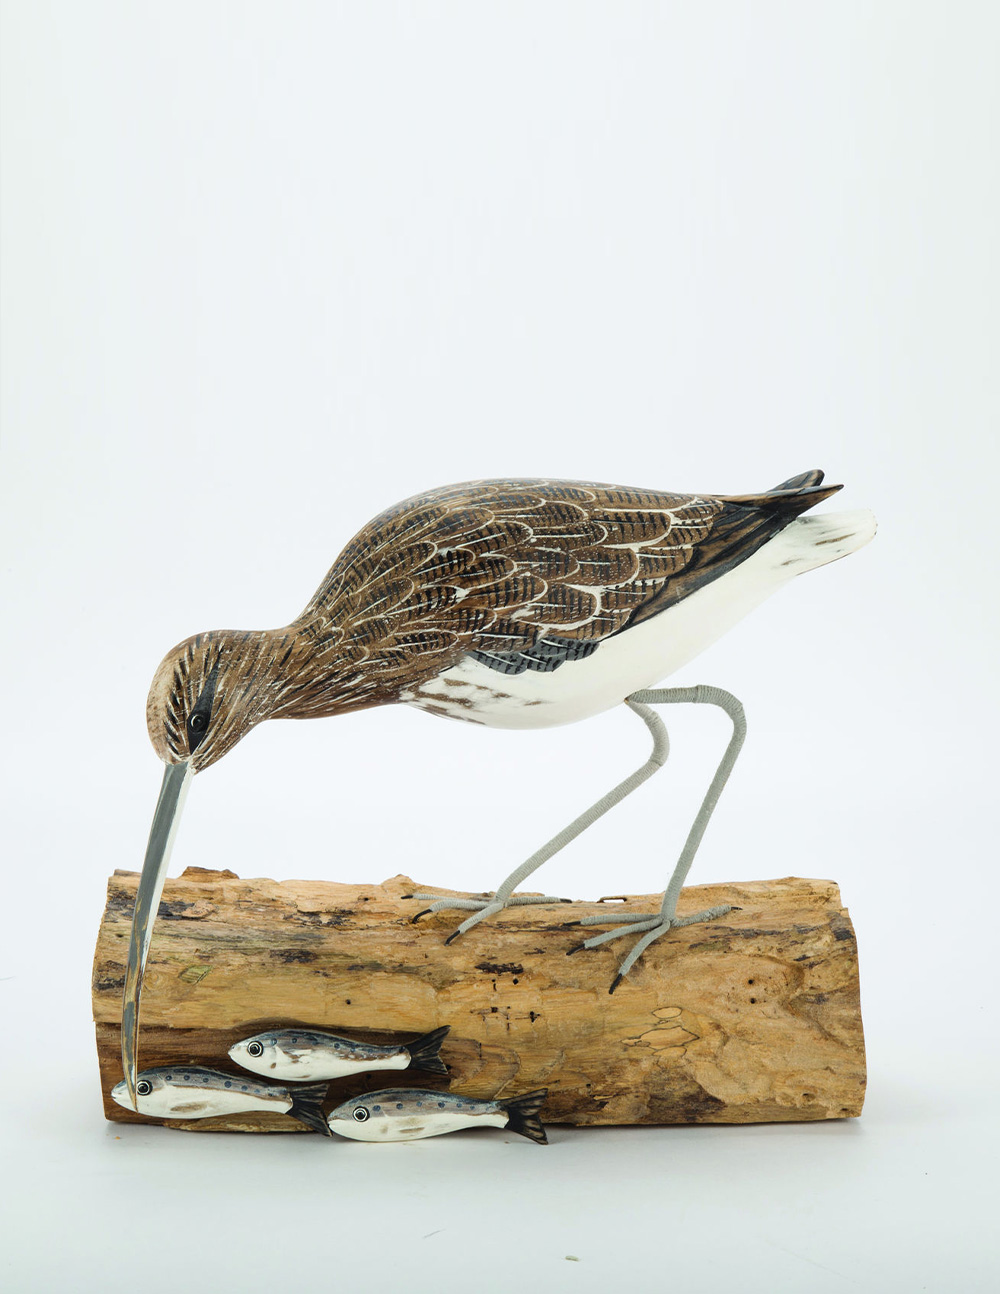 Archipelago Curlew Fishing Wooden Bird Sculpture Fair Traded